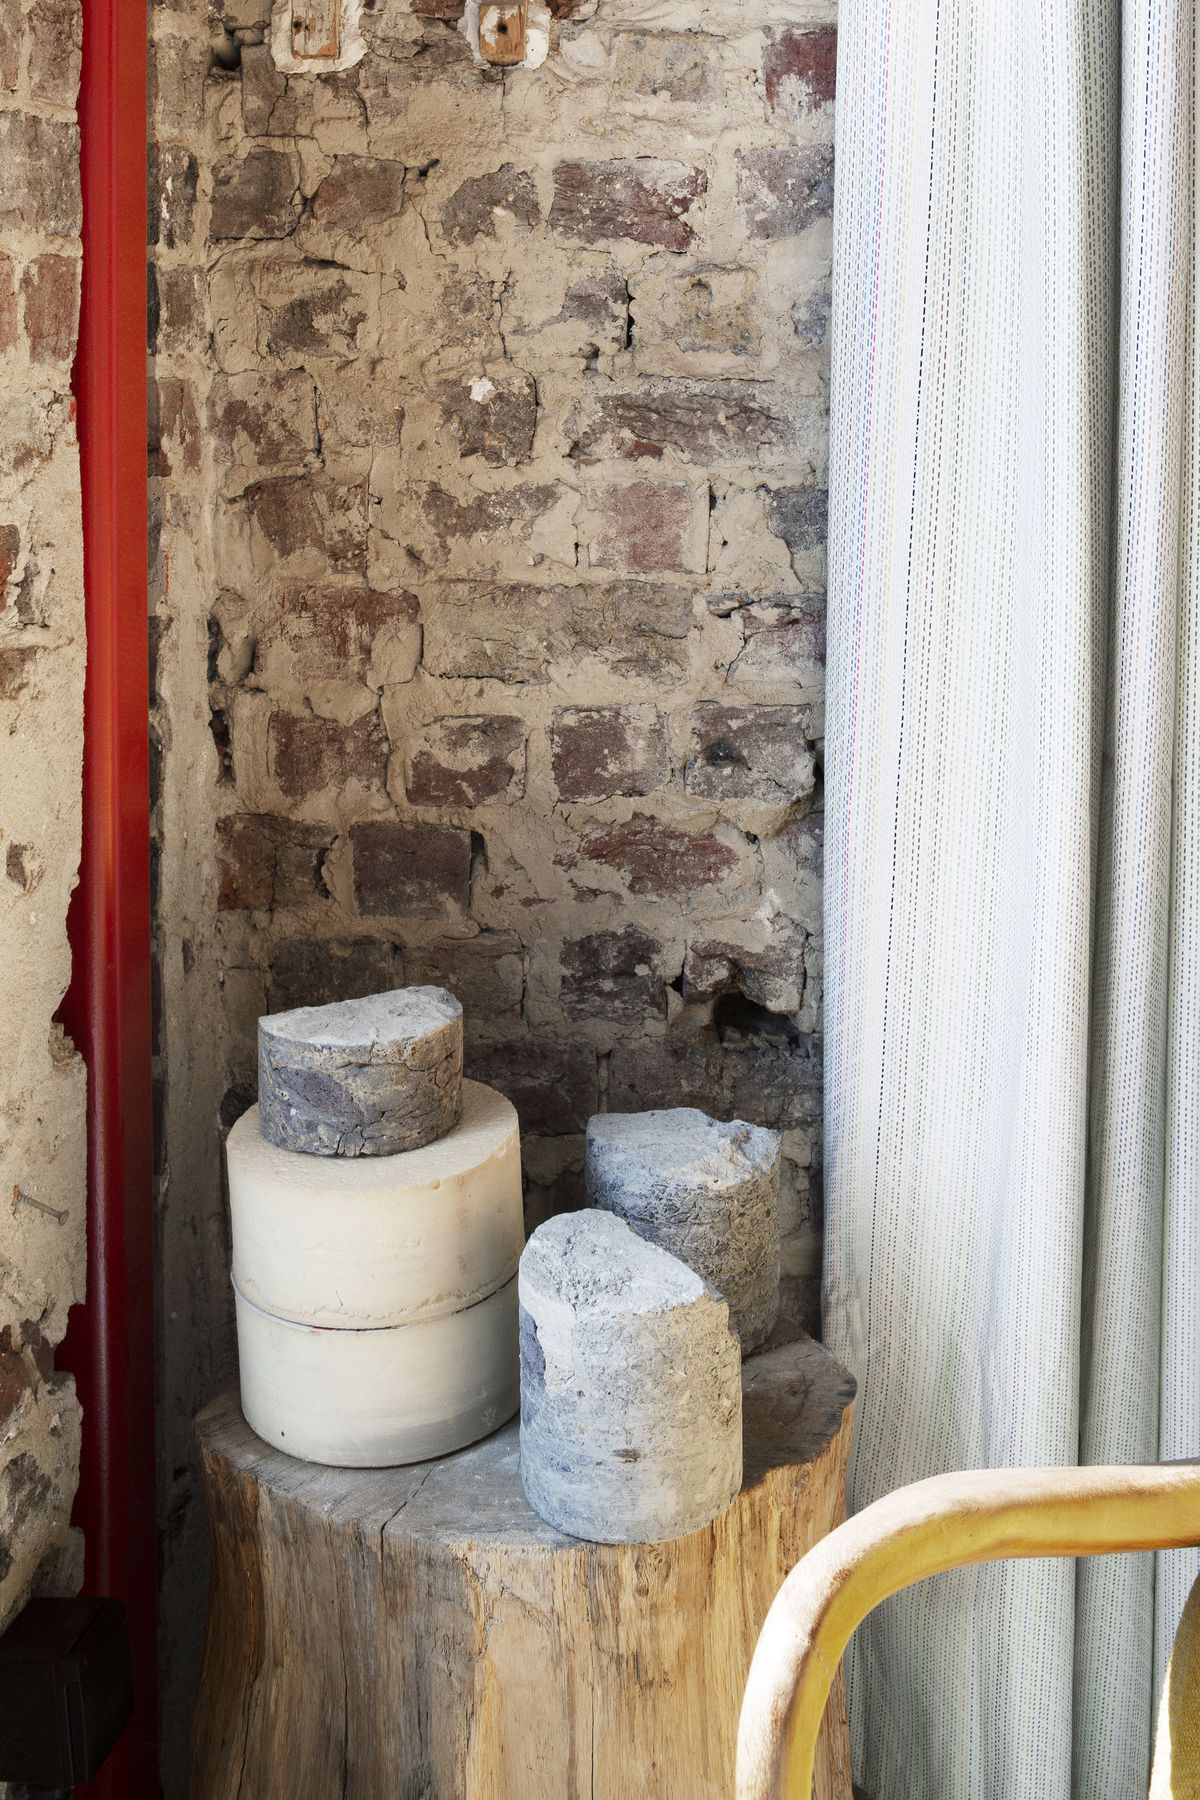 The corner of a room. The wall is exposed brick. There is a tree stump with various masonry objects on top of it. A white curtain hangs to the side.